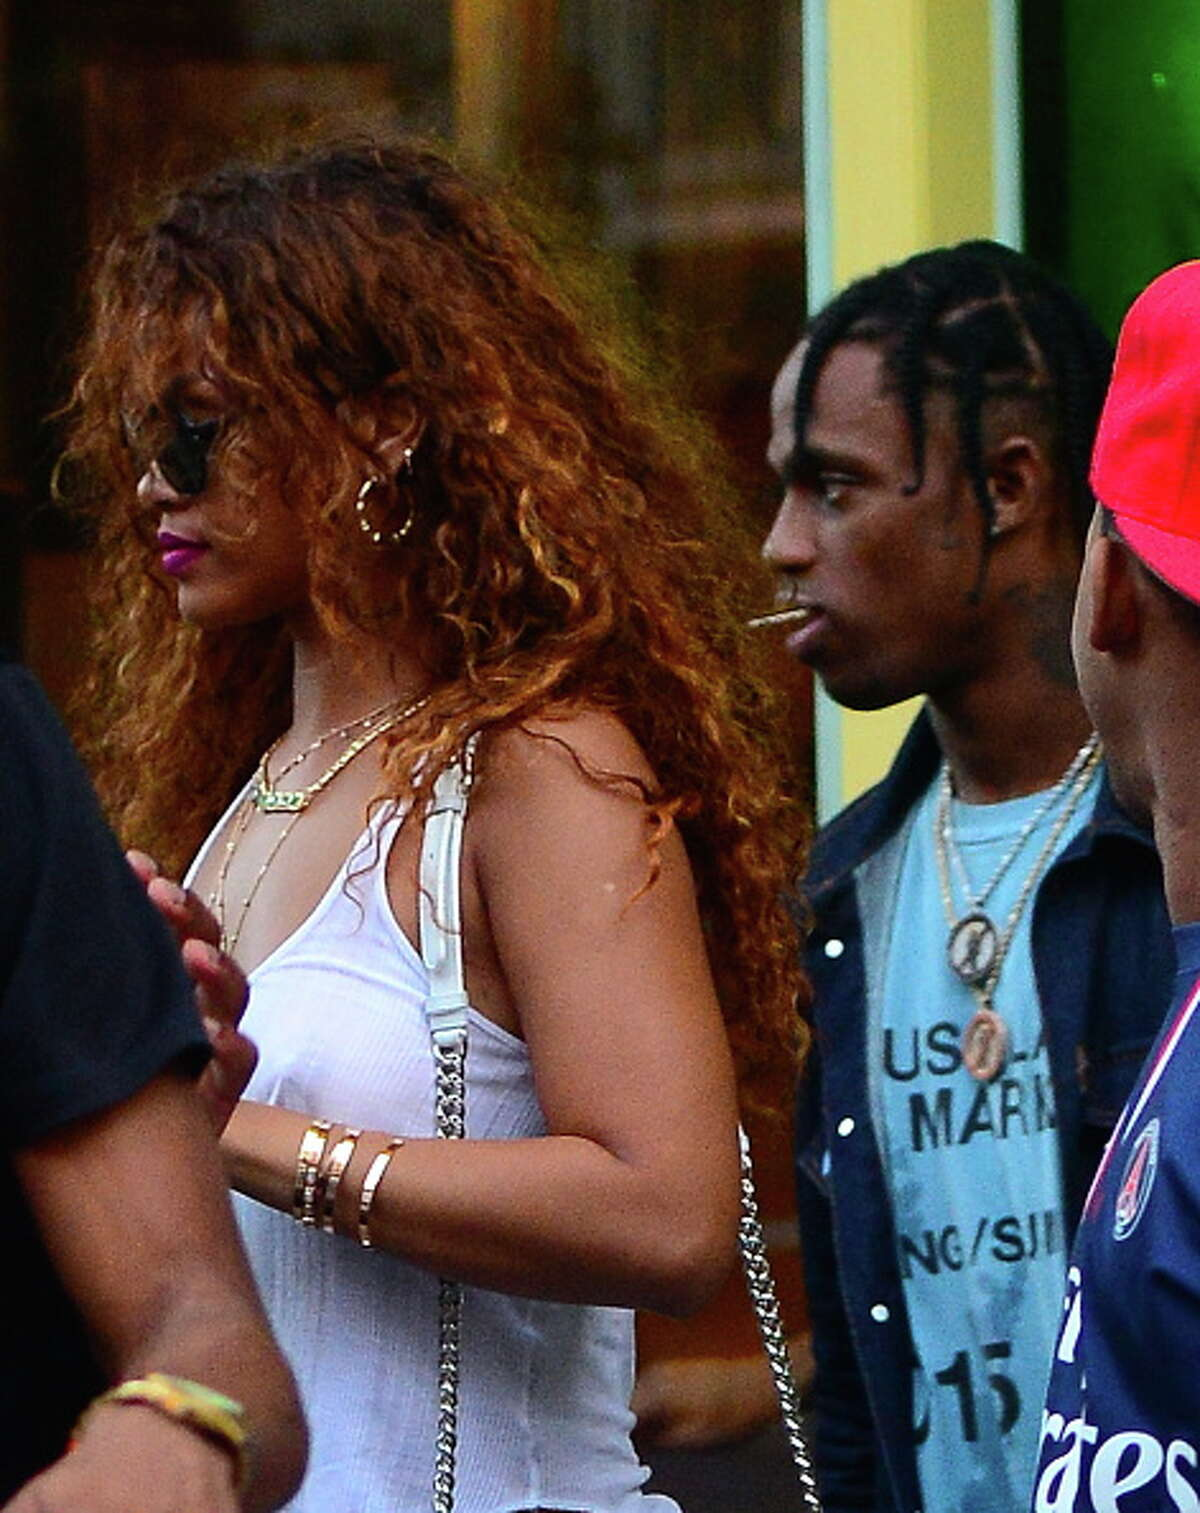 NEW YORK, NY - AUGUST 12: Singer Rihanna and Travis Scott are seen coming out of Coppelia restaurant in Soho on August 12, 2015 in New York City. (Photo by Raymond Hall/GC Images)